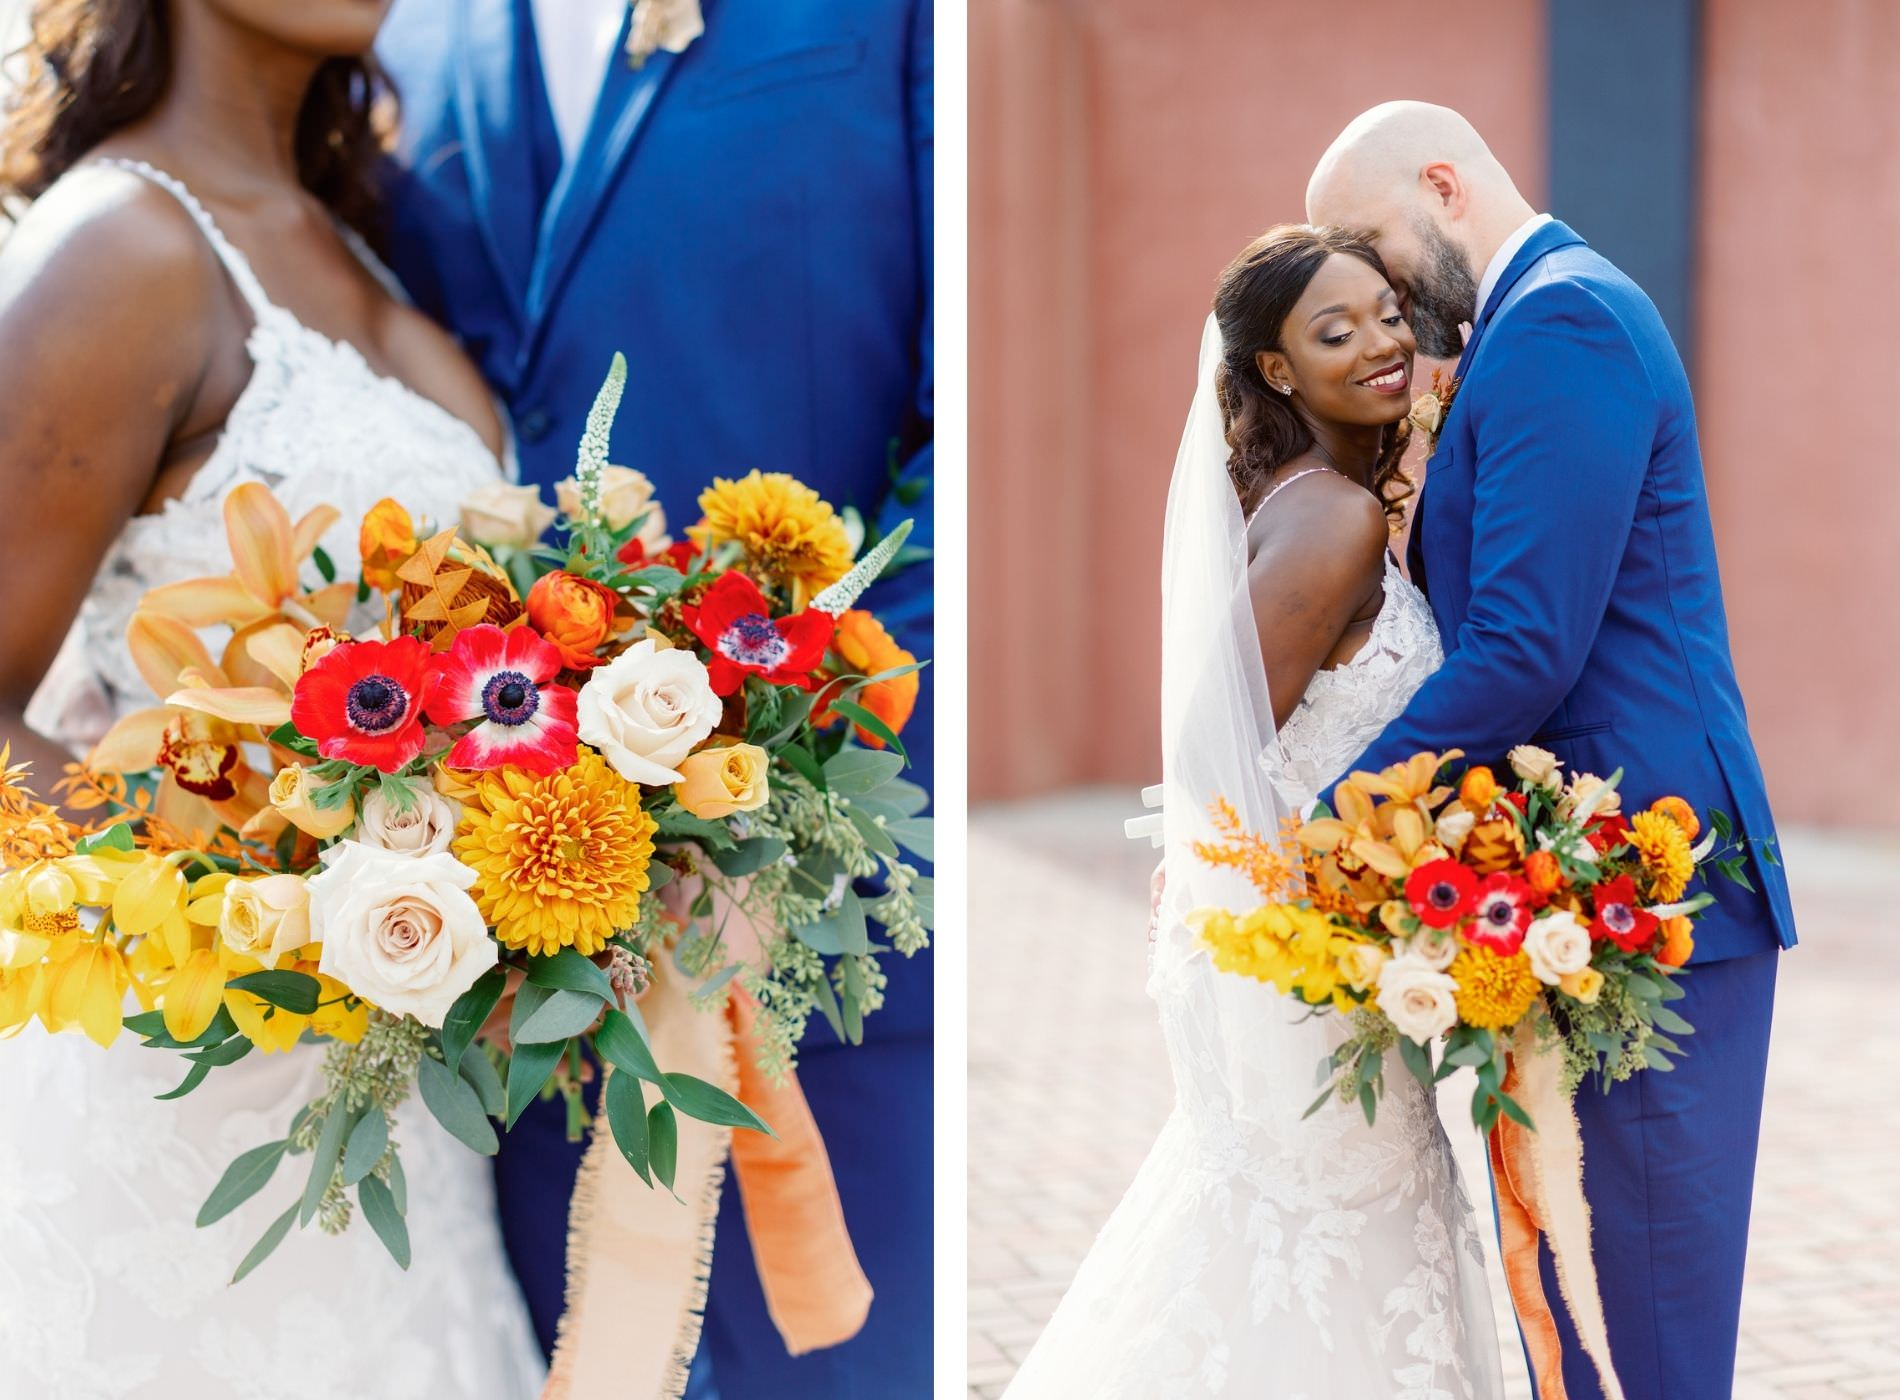 Downtown St. Petersburg Bride and Groom, Modern Boho Florida Bride Holding Vibrant Autumn-Inspired Floral Bouquet with Orange, Yellow, Red and White Florals, Bride Wearing White Lace Mermaid Style Dress, Groom in Dark Blue Suit   Tampa Bay Wedding Planner Coastal Coordinating